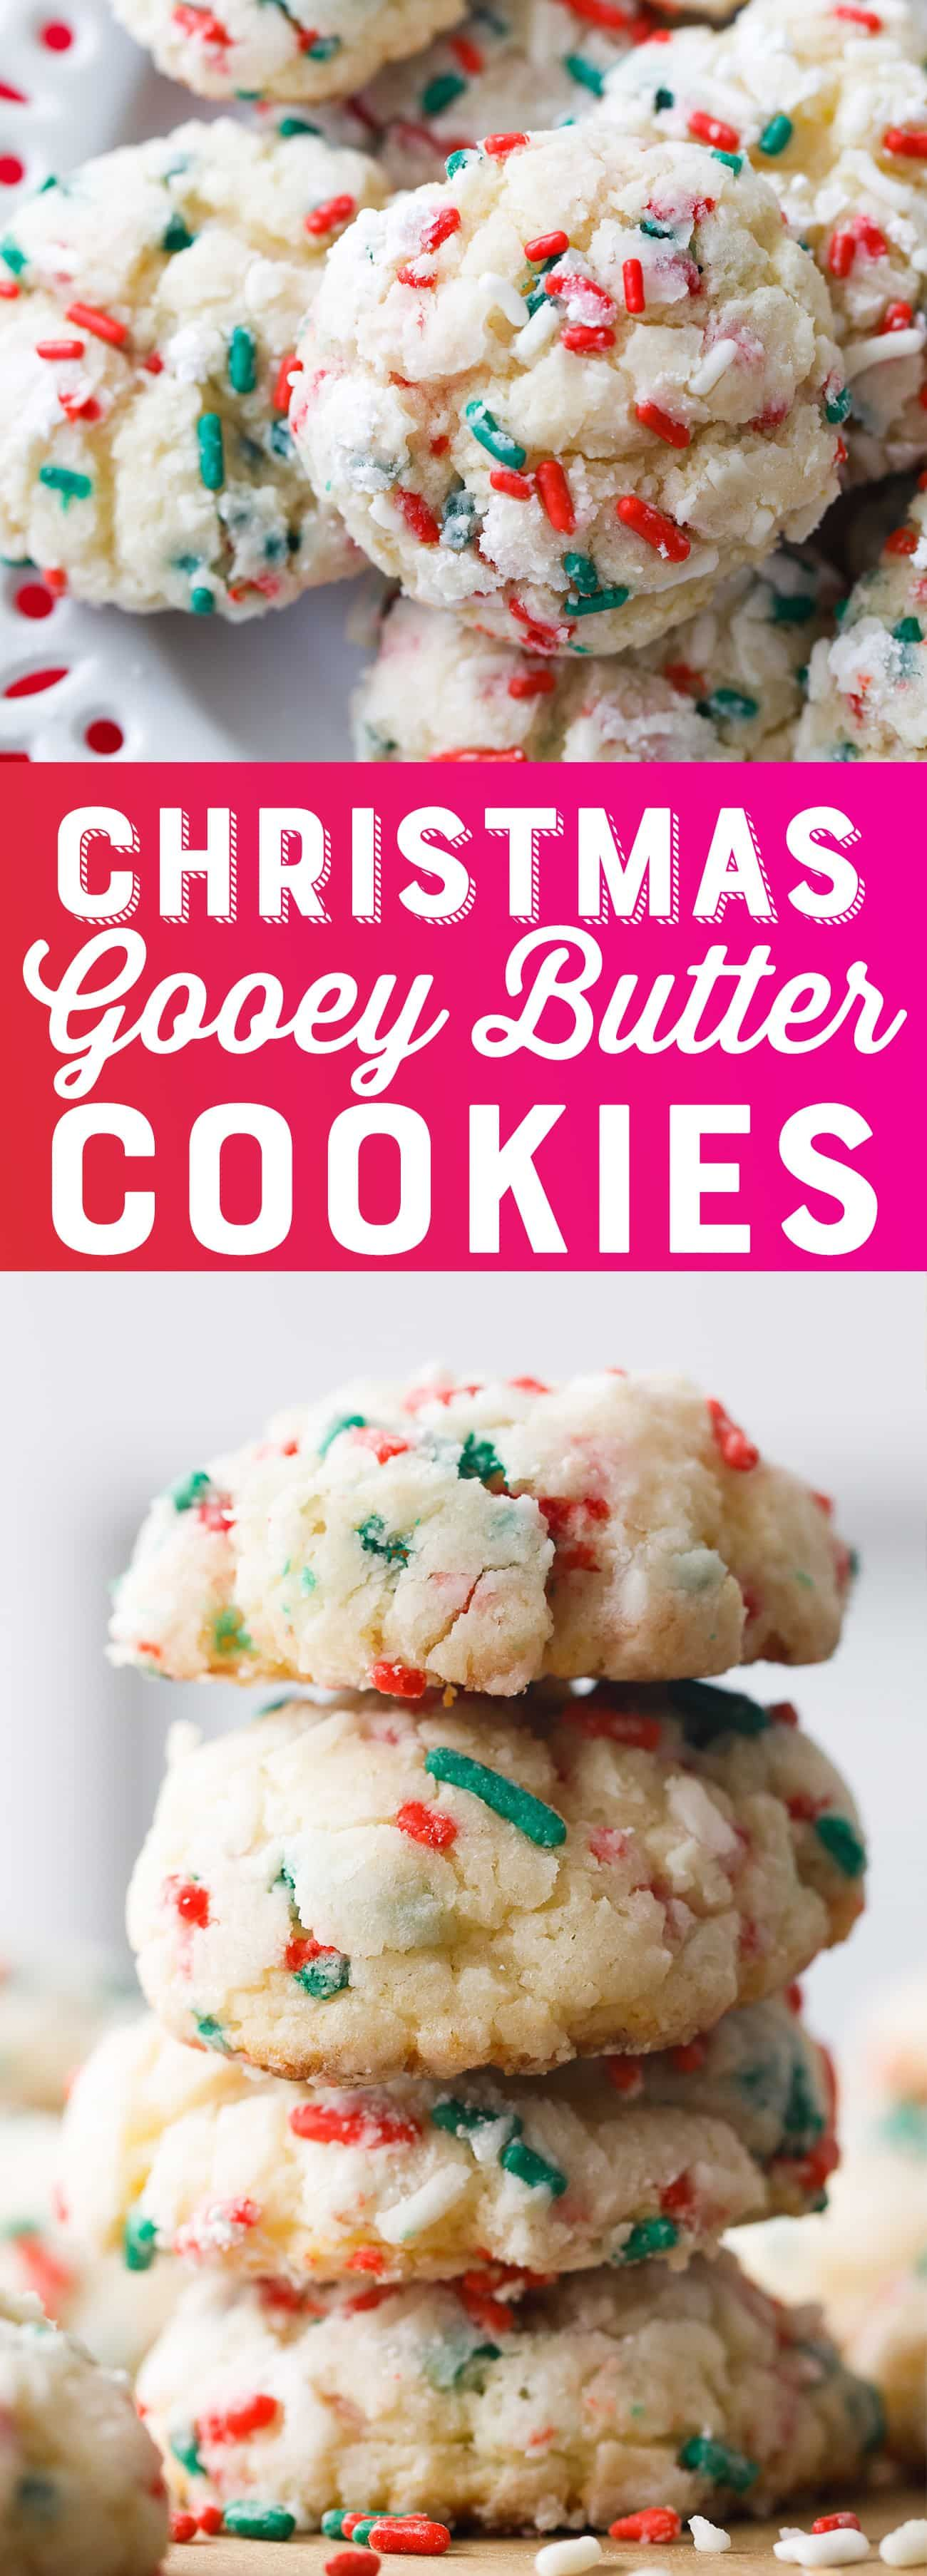 Christmas Gooey Butter Cookies Recipe - Gooey Butter Cookies Holiday